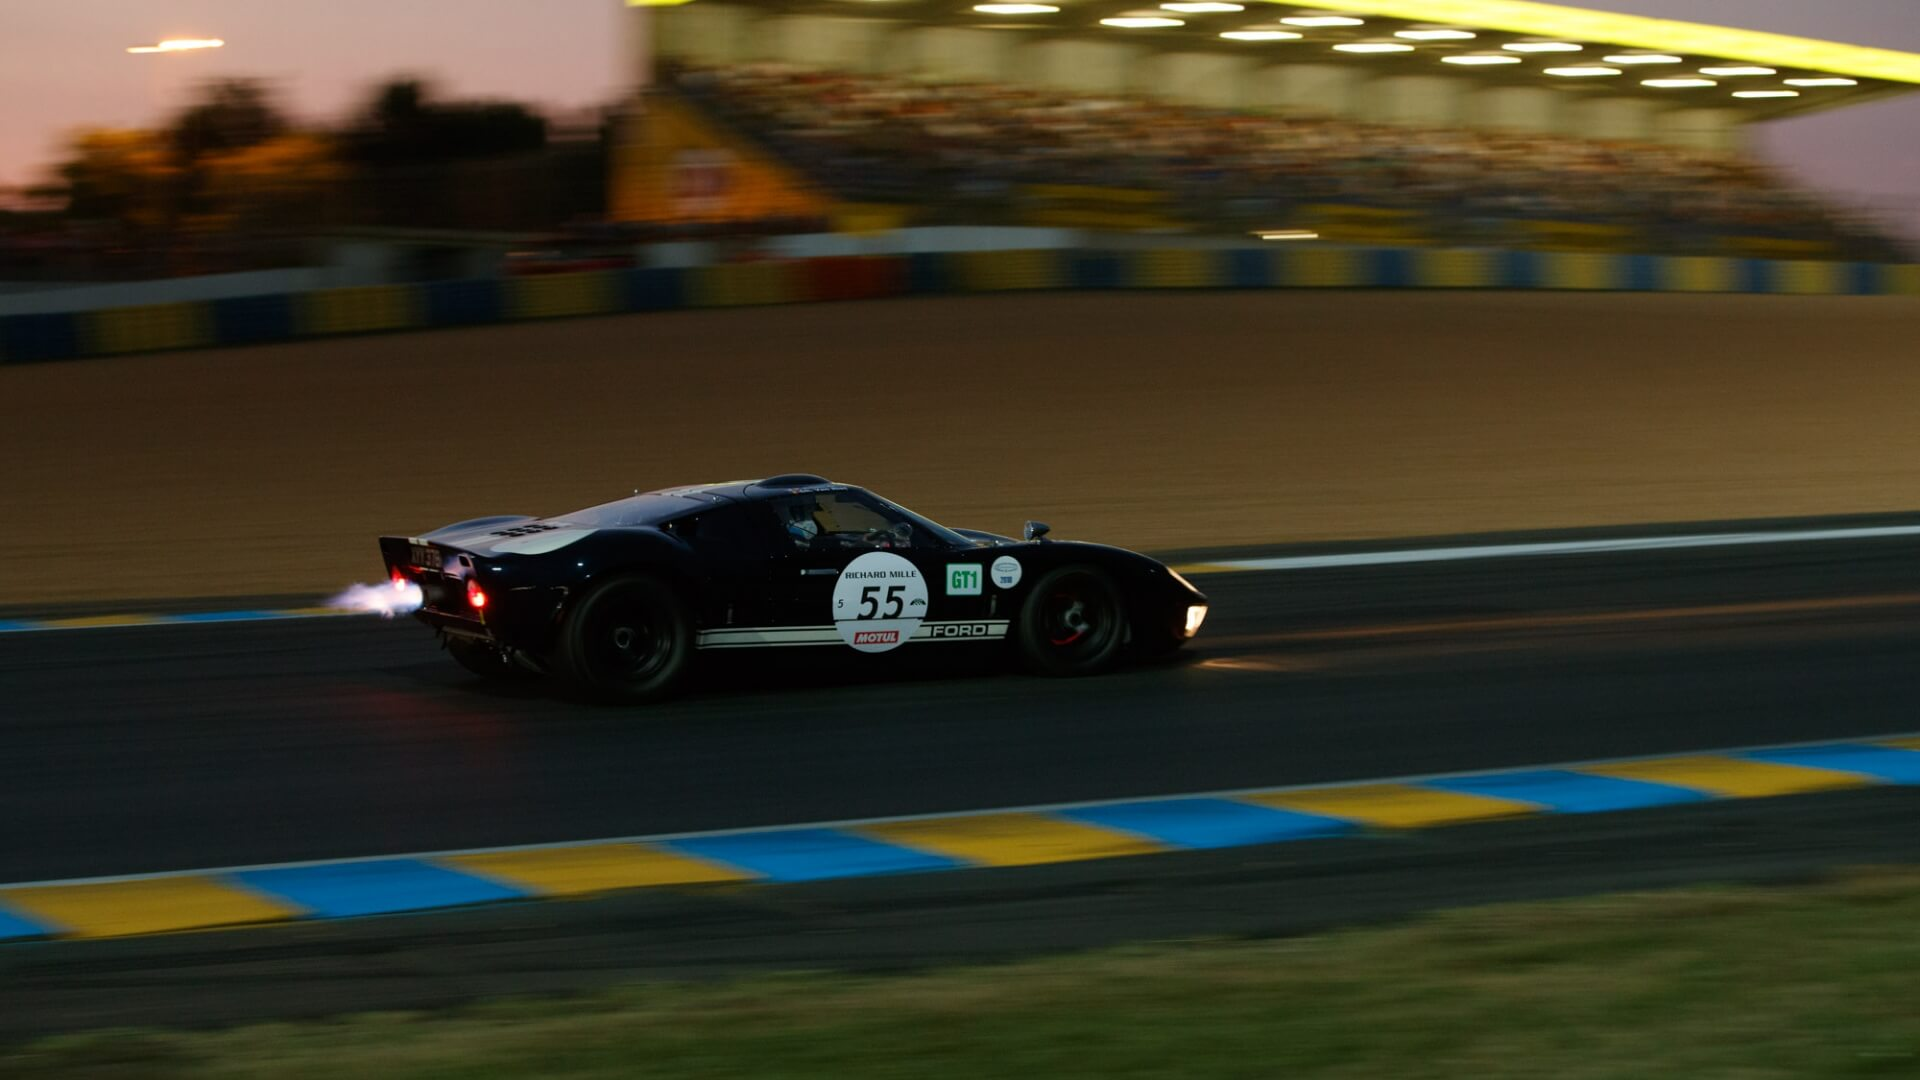 Le Mans Classic: Strong showing for Gipimotor at Circuit de la Sarthe · Gipimotor